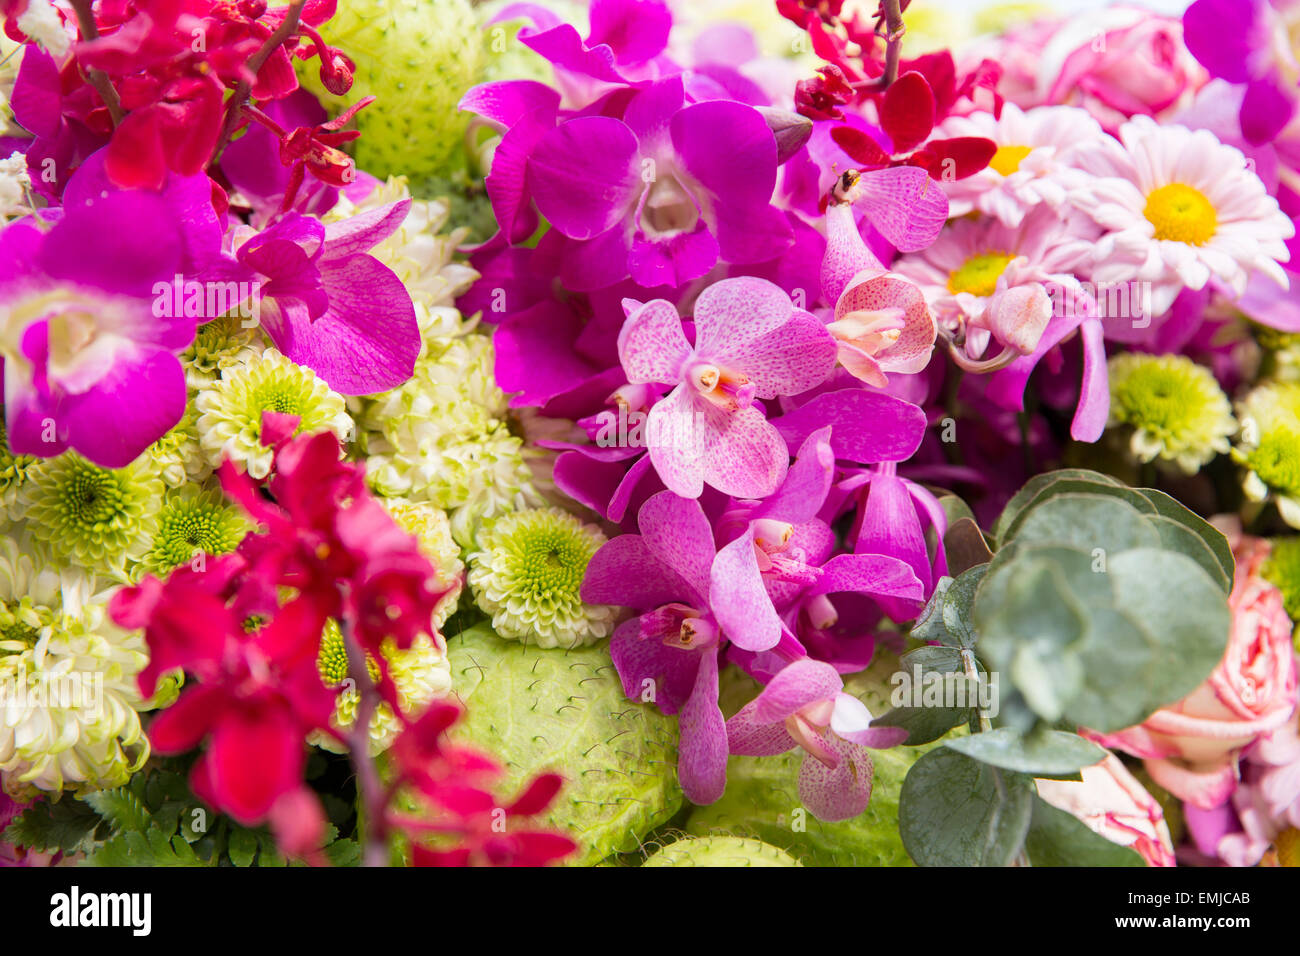 Many different beautiful flowers blossoming stock photos many beautiful flowers decoration stock image izmirmasajfo